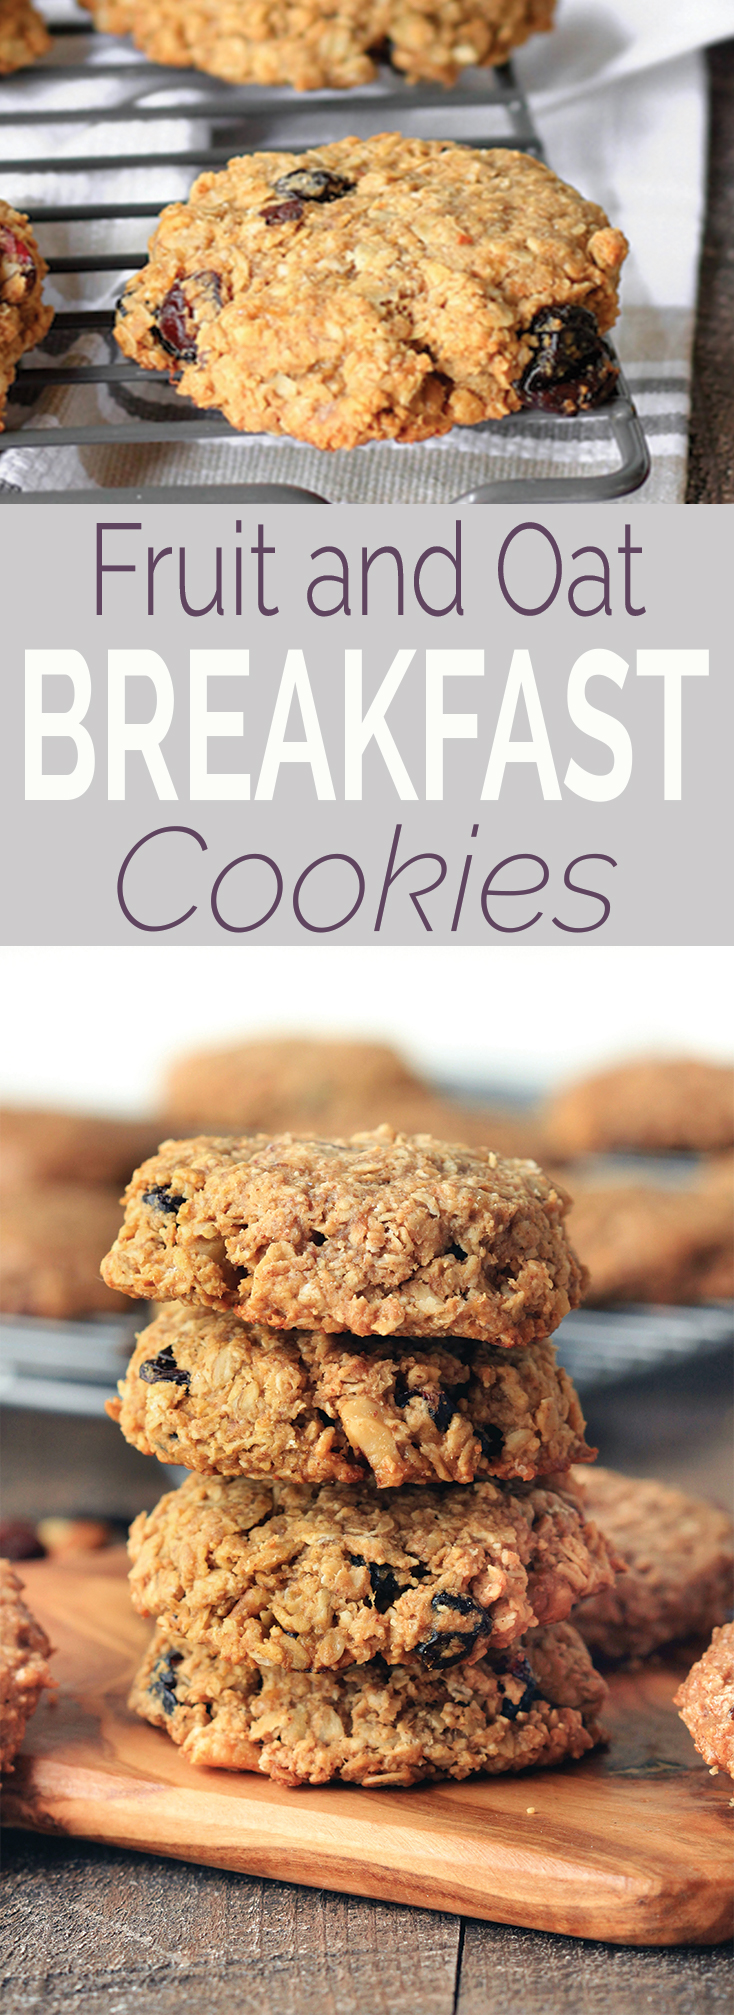 Healthy fruit and oat breakfast cookies (freezer-friendly) are simple to make, requiring only 1 bowl and 10 ingredients. Vegan, gluten-free, perfectly sweet and chewy, and the perfect snack or on-the-go-breakfast. #BRMOats #Ad